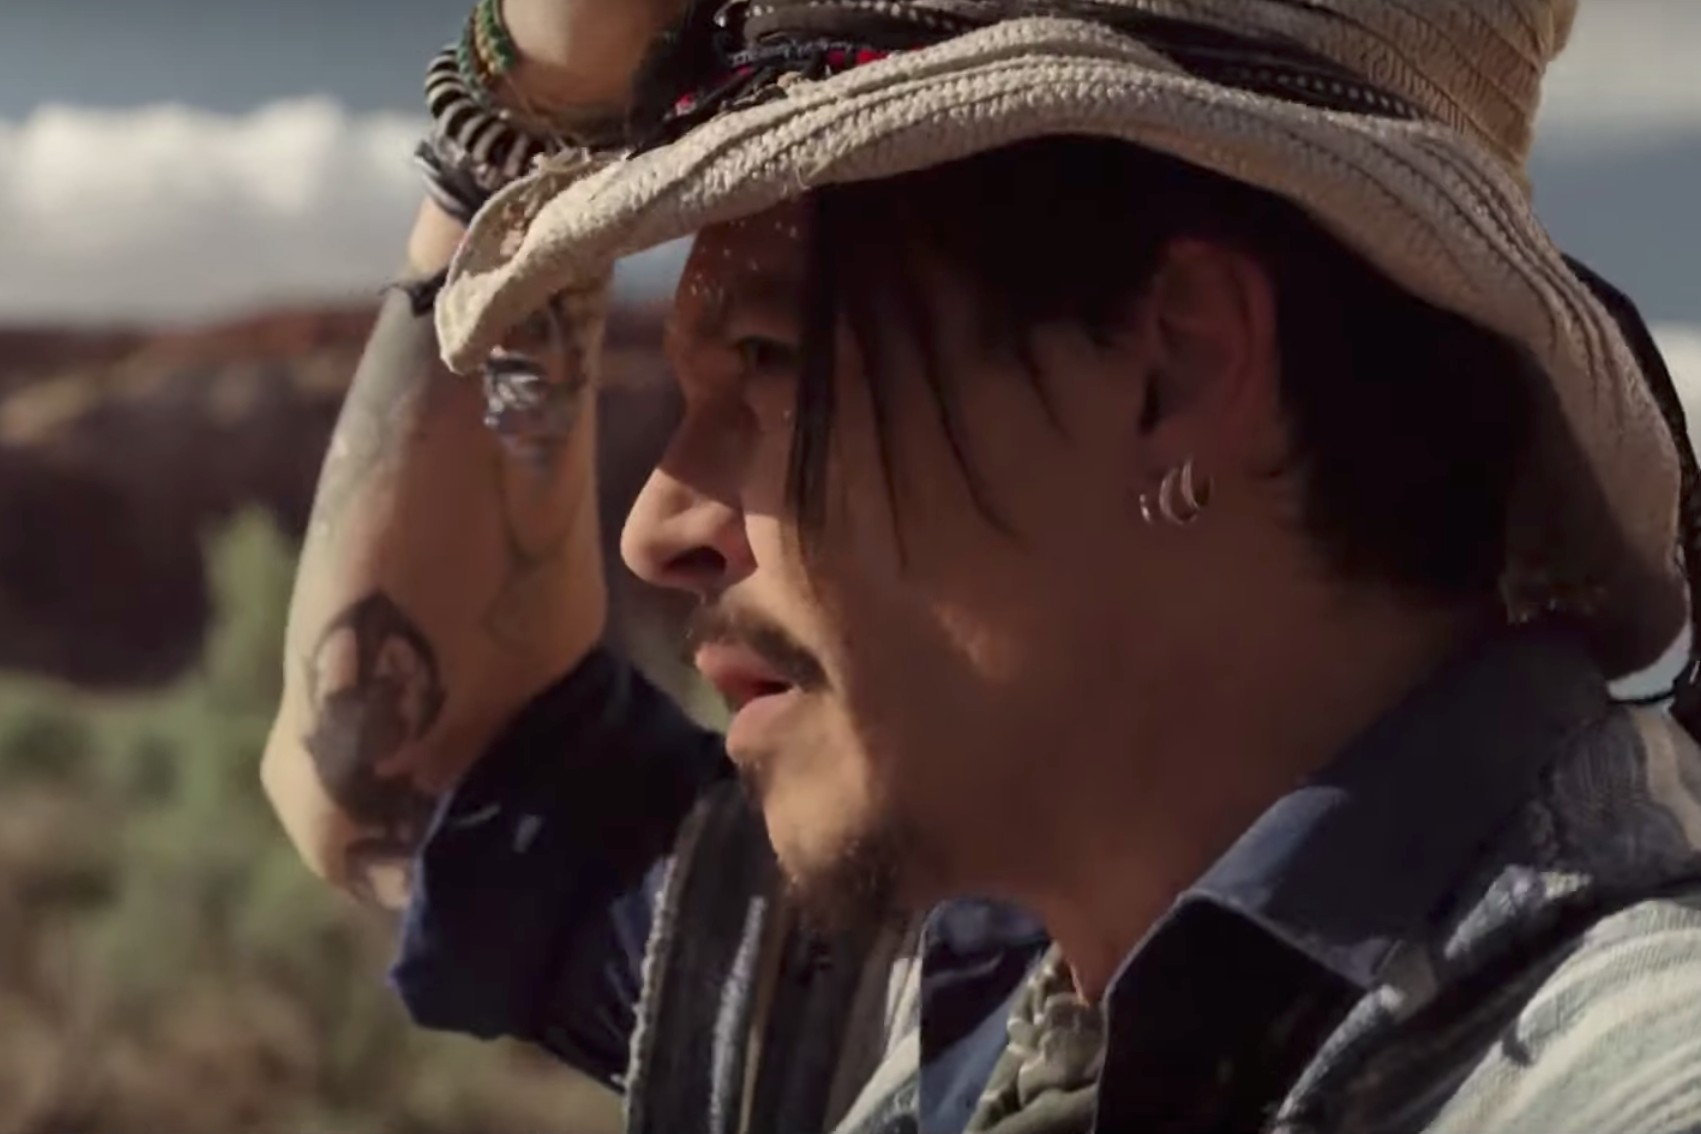 News about Facebook, Google and Dior's Johnny Depp ad: Wake-Up Call